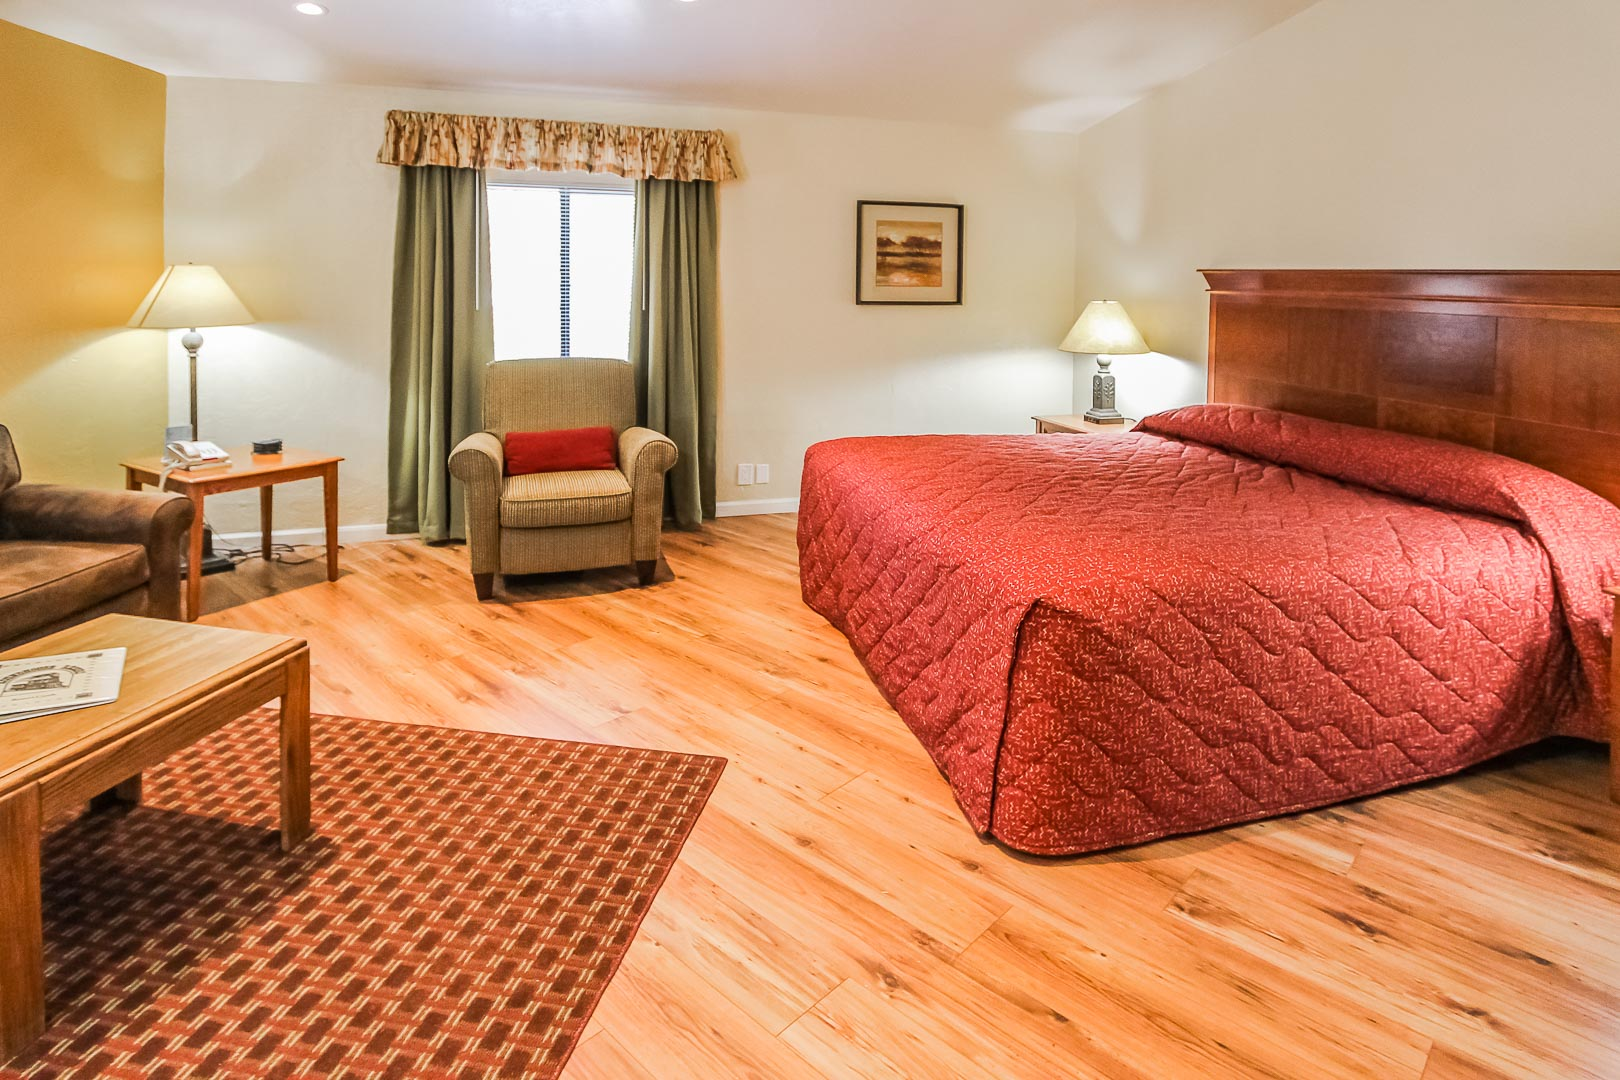 A king size bed at VRI's Roundhouse Resort in Pinetop, Arizona.